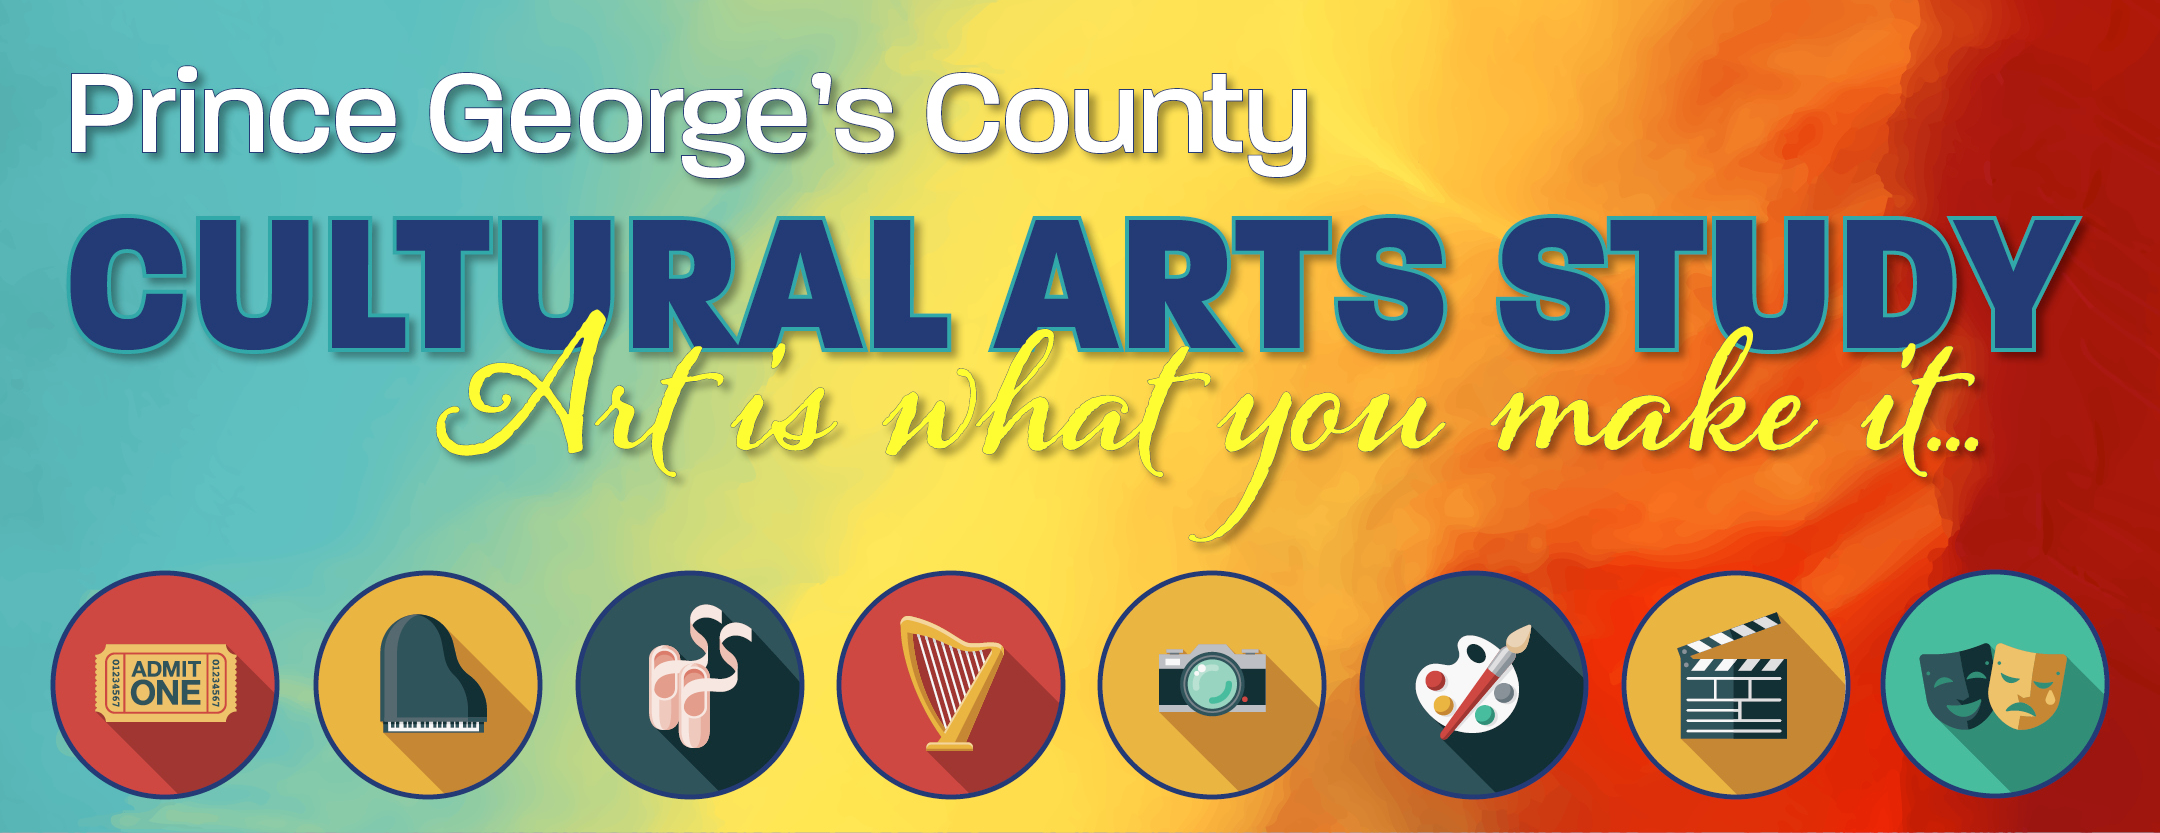 Prince George's County Cultural Arts Study Cultur